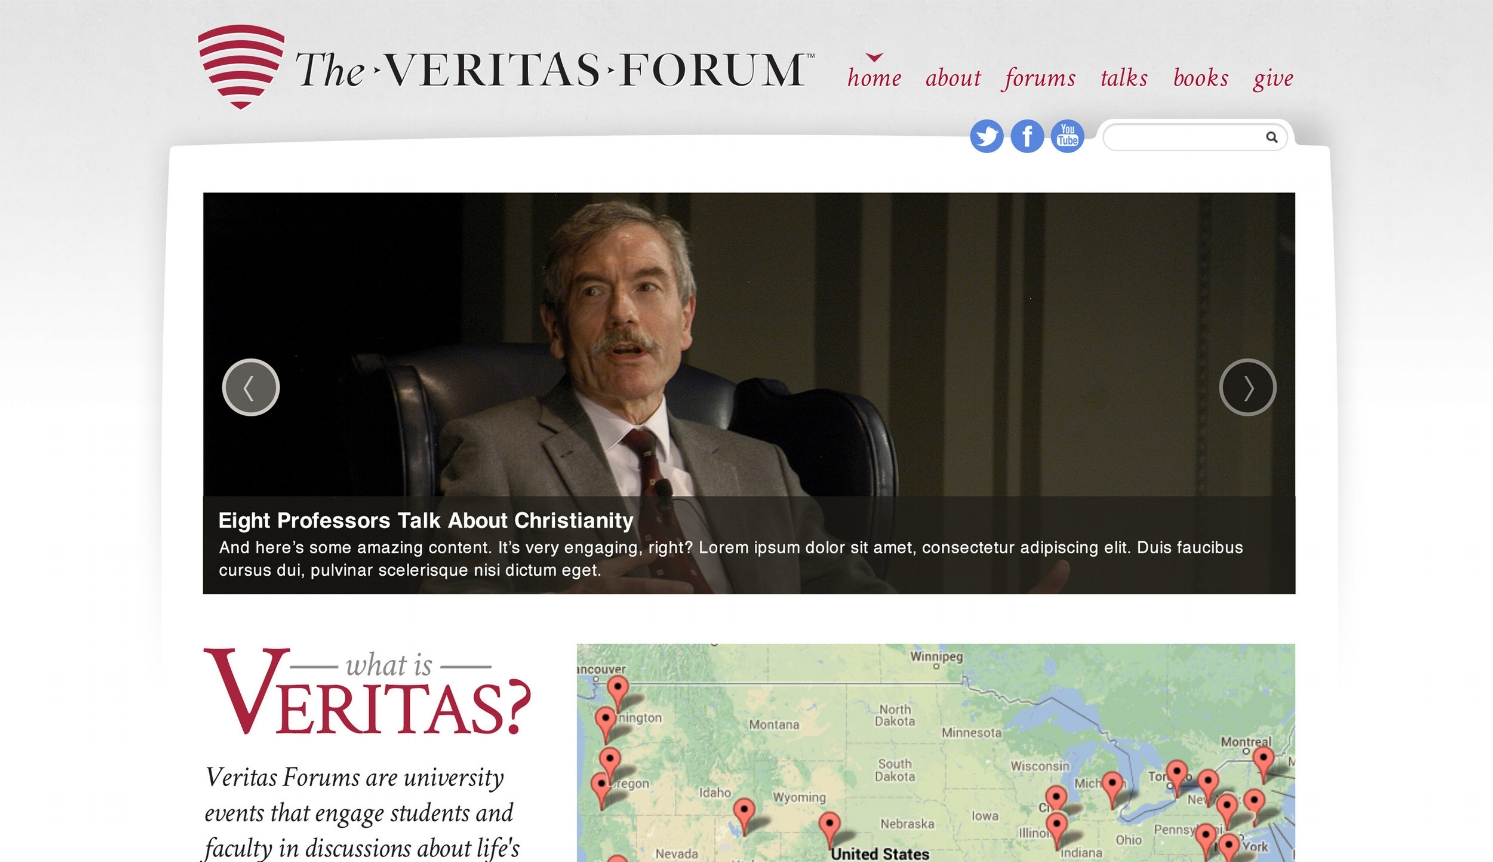 Veritas Forum - Veritas Forum is renowned on university campuses from Harvard to Stanford for events that invite students to discuss life's biggest questions. In 2013, I headed a team that did a rapid, incremental revamp of their media- and event-driven website, in addition to conducting market research on potential new products.